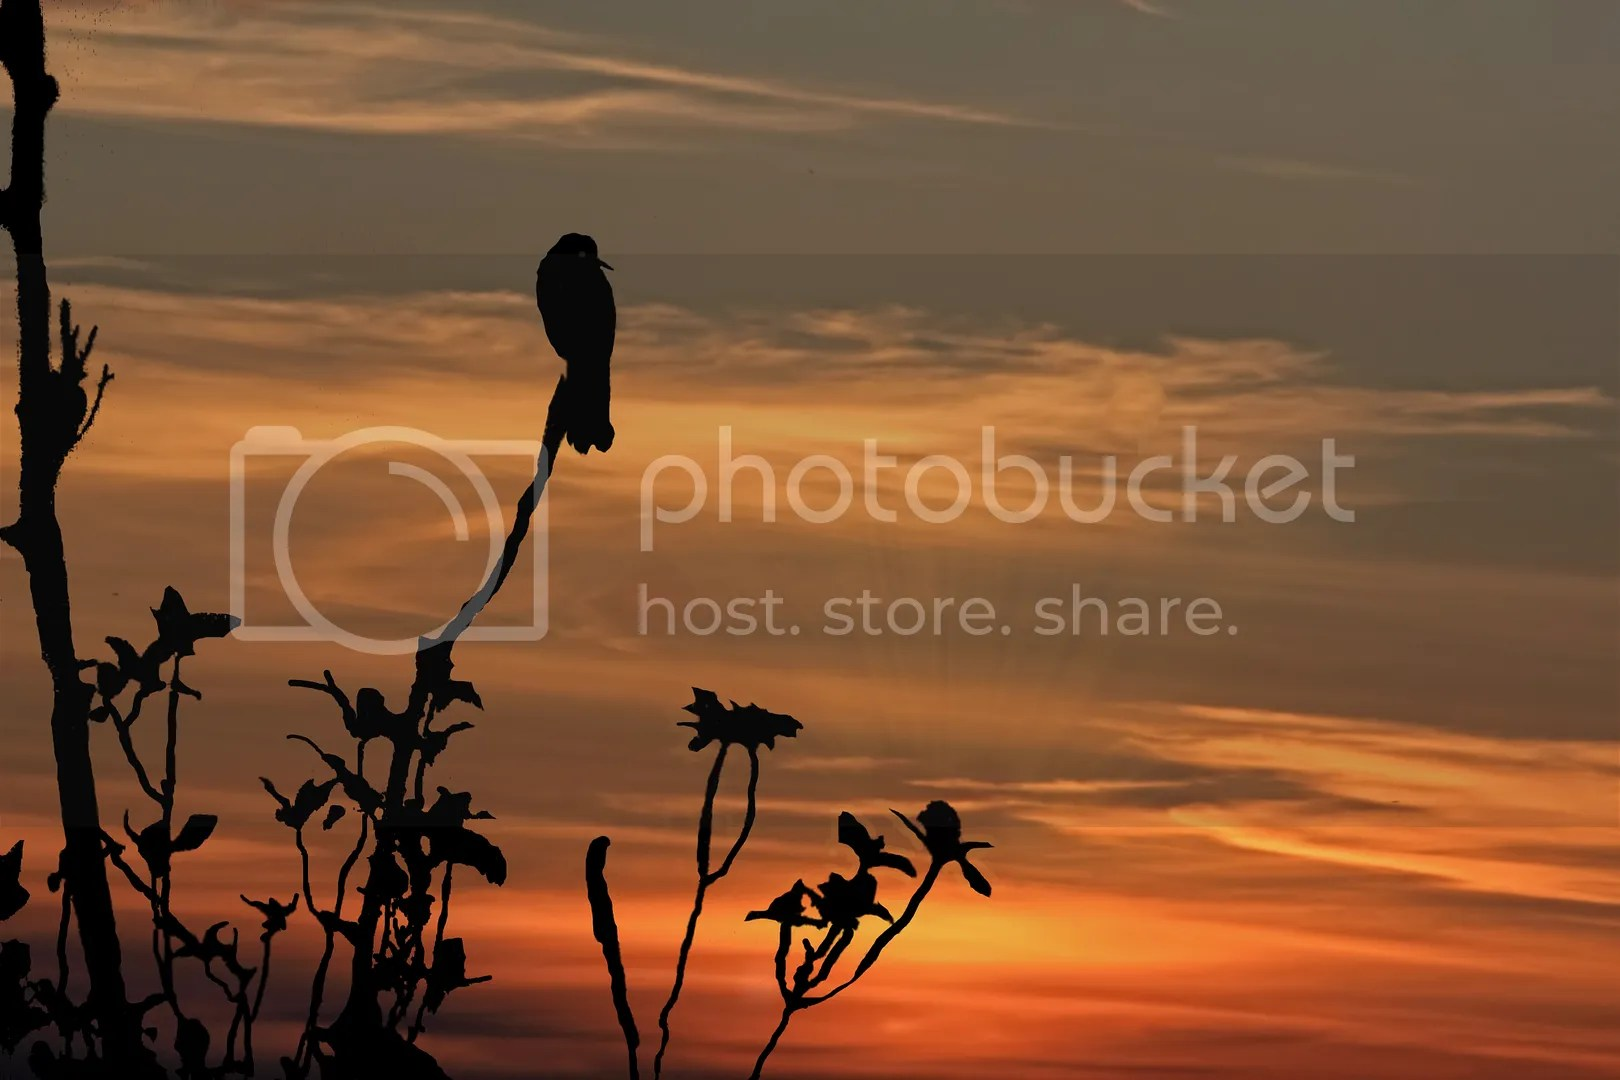 bird wing photo: A bird in the tree at sunset abirdinthetreeatsunset.jpg